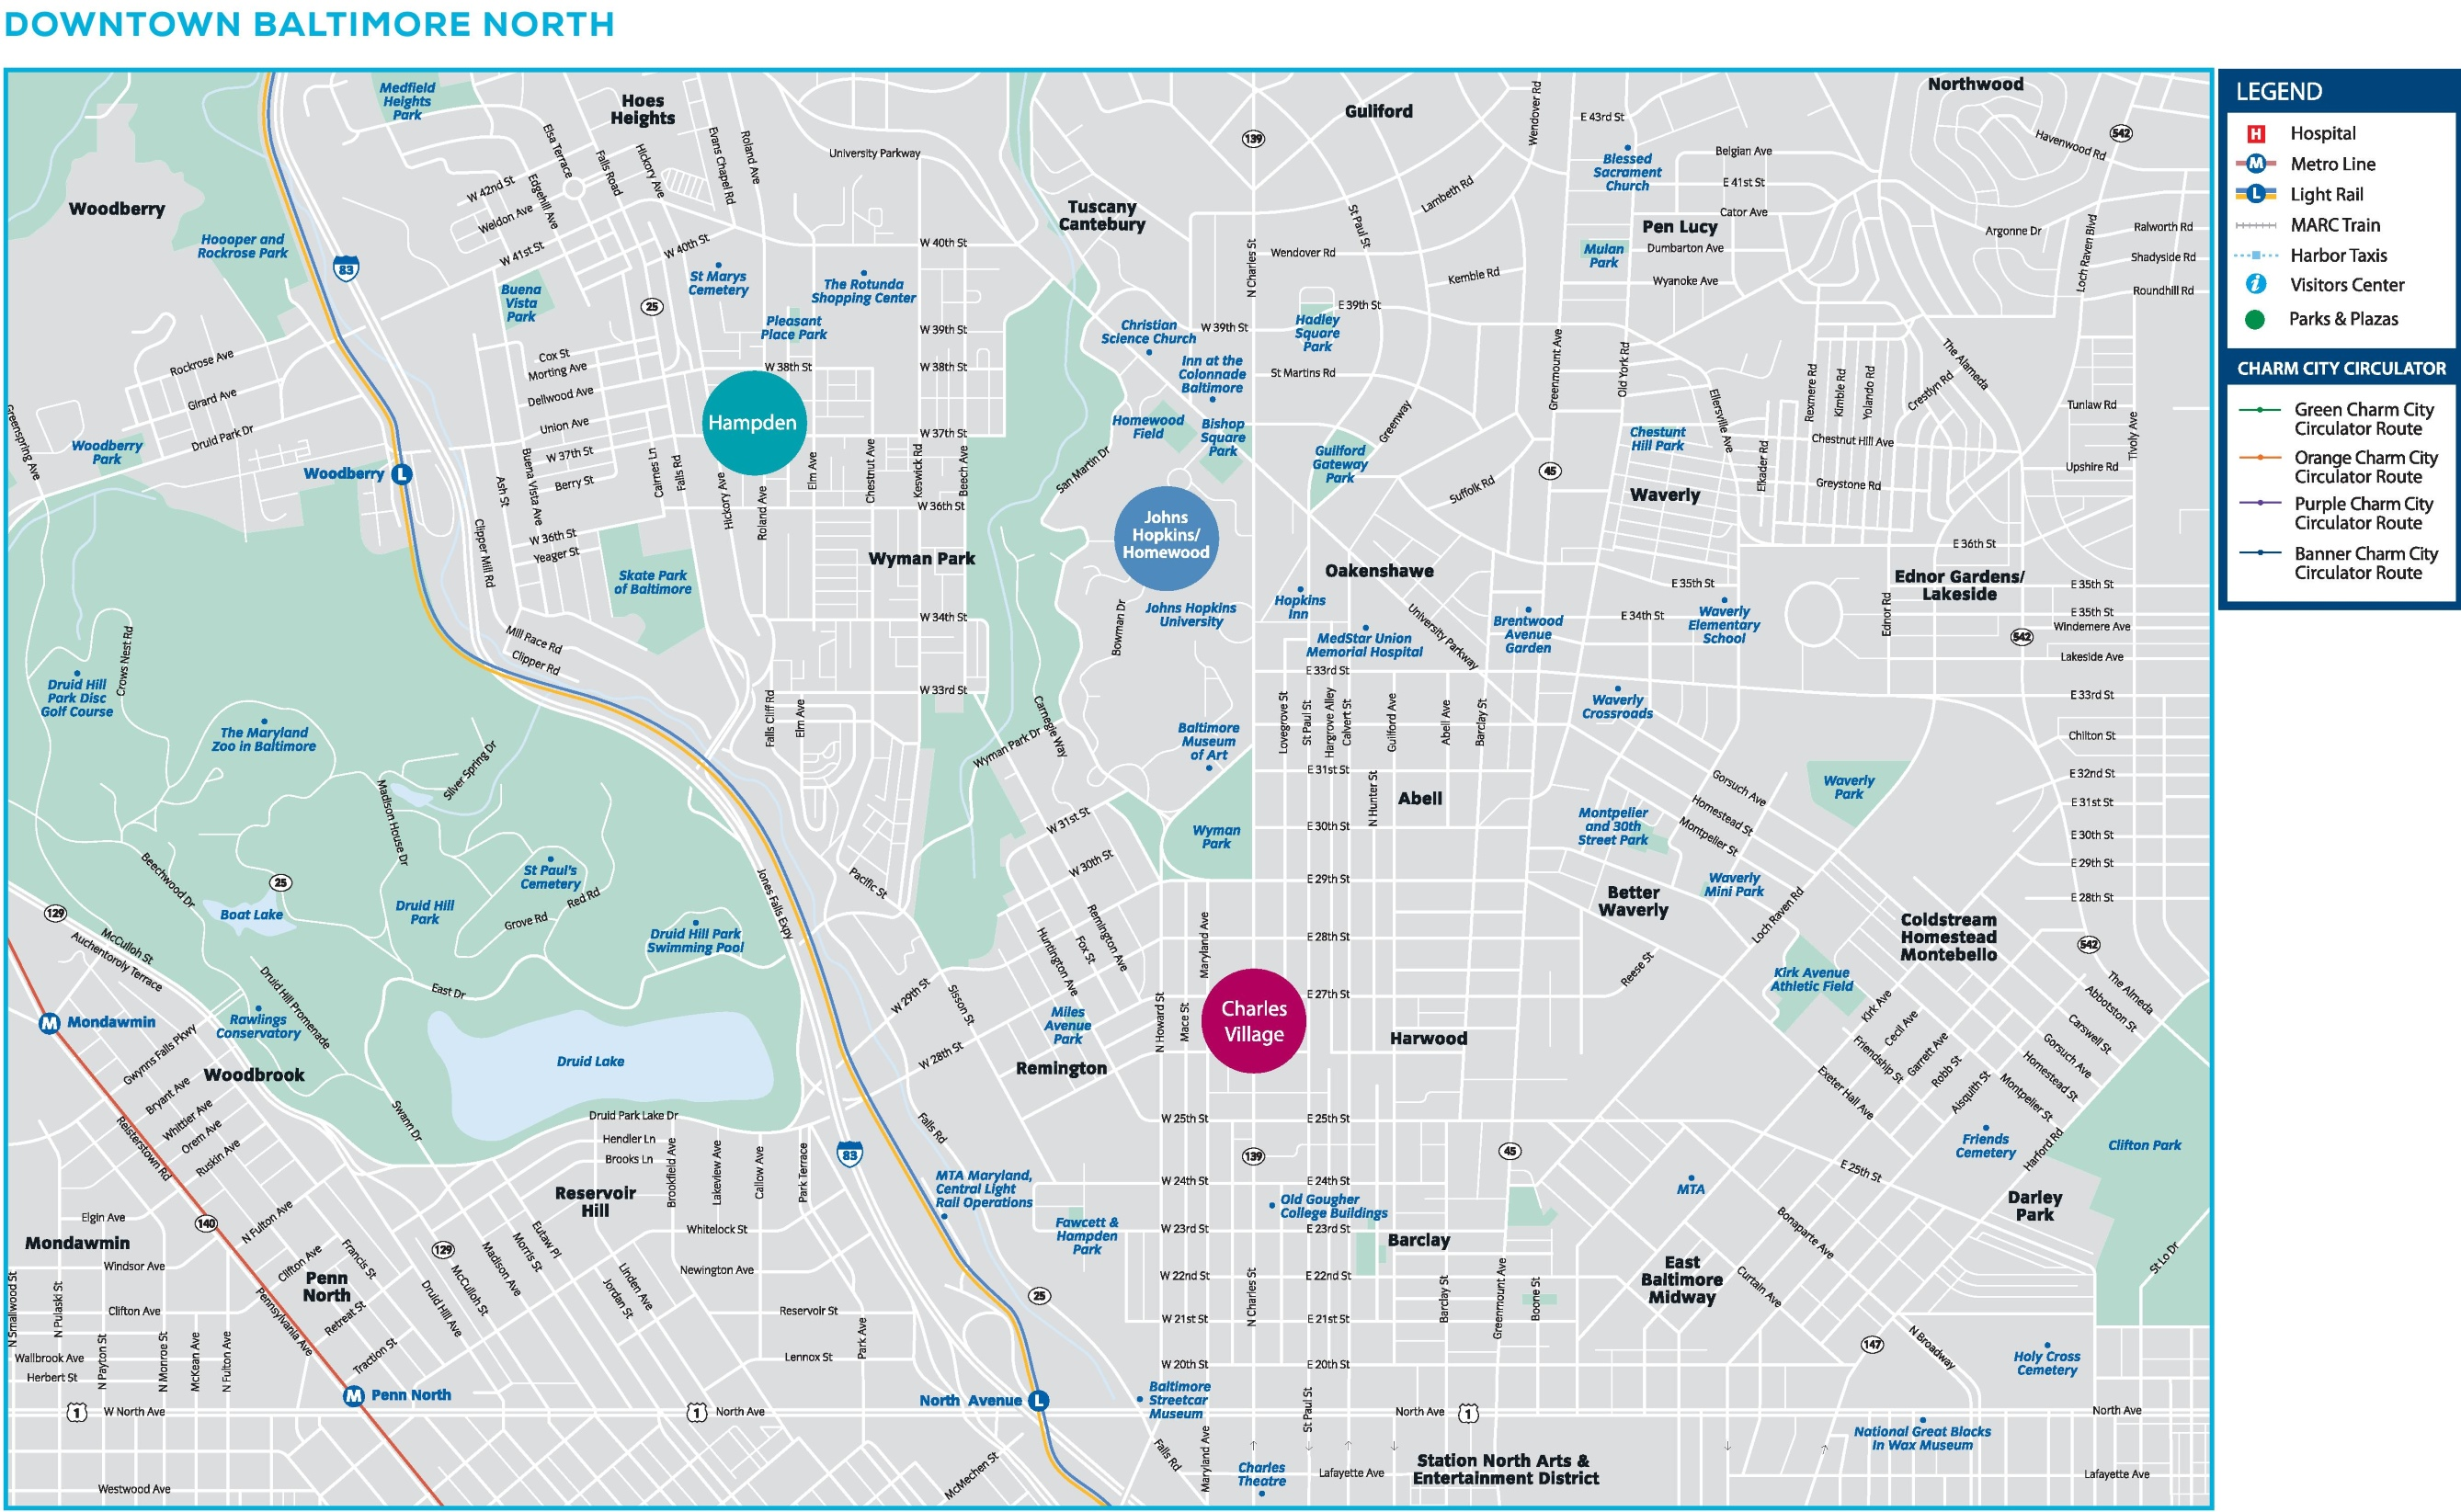 Downtown Baltimore North map